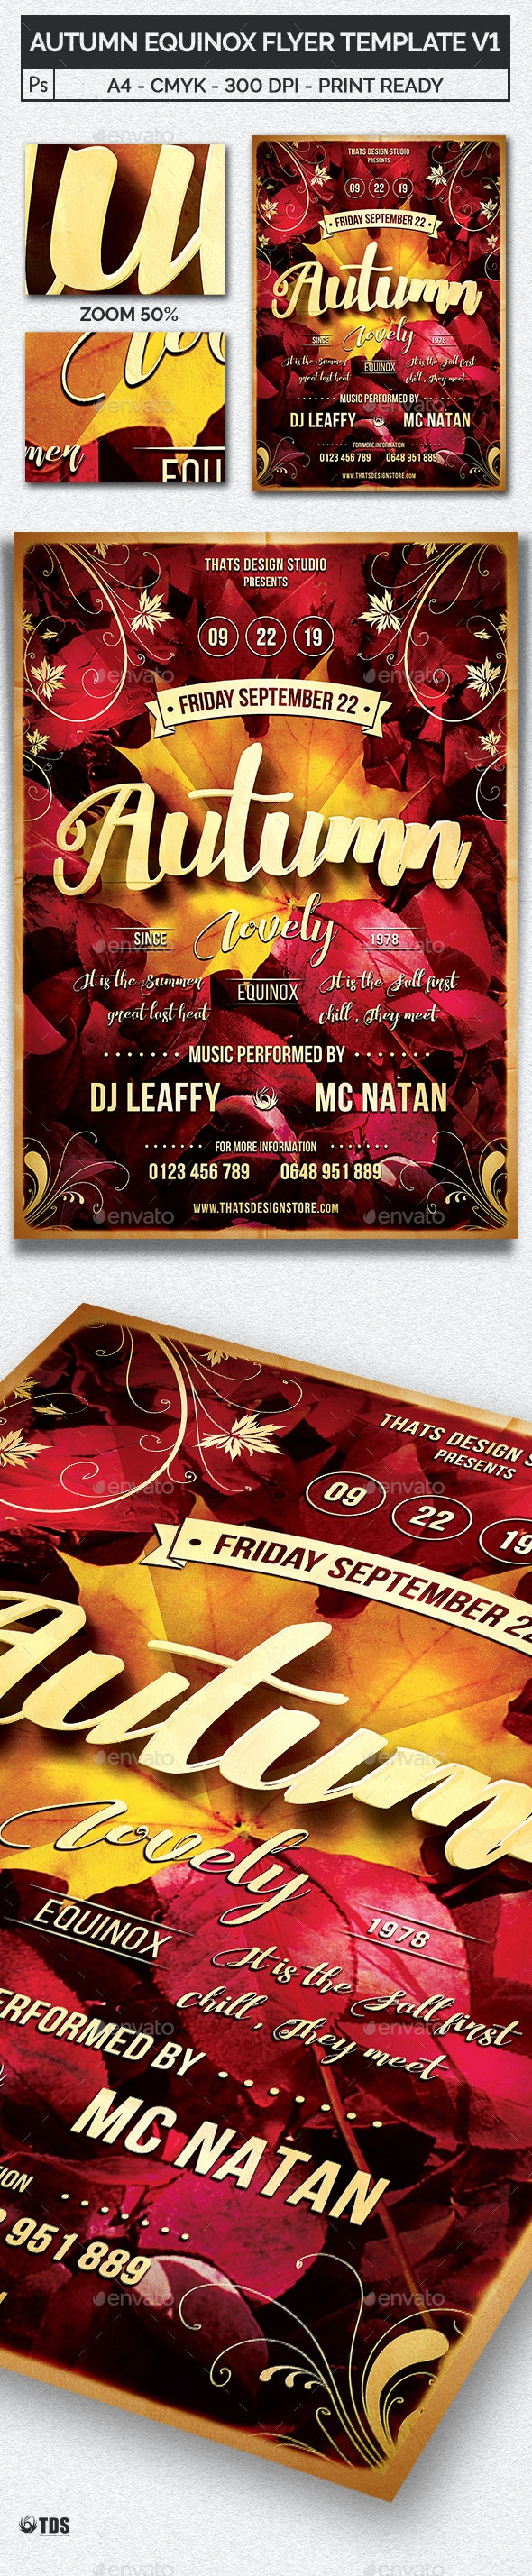 Autumn Equinox Flyer Template V1 - Clubs & Parties Events